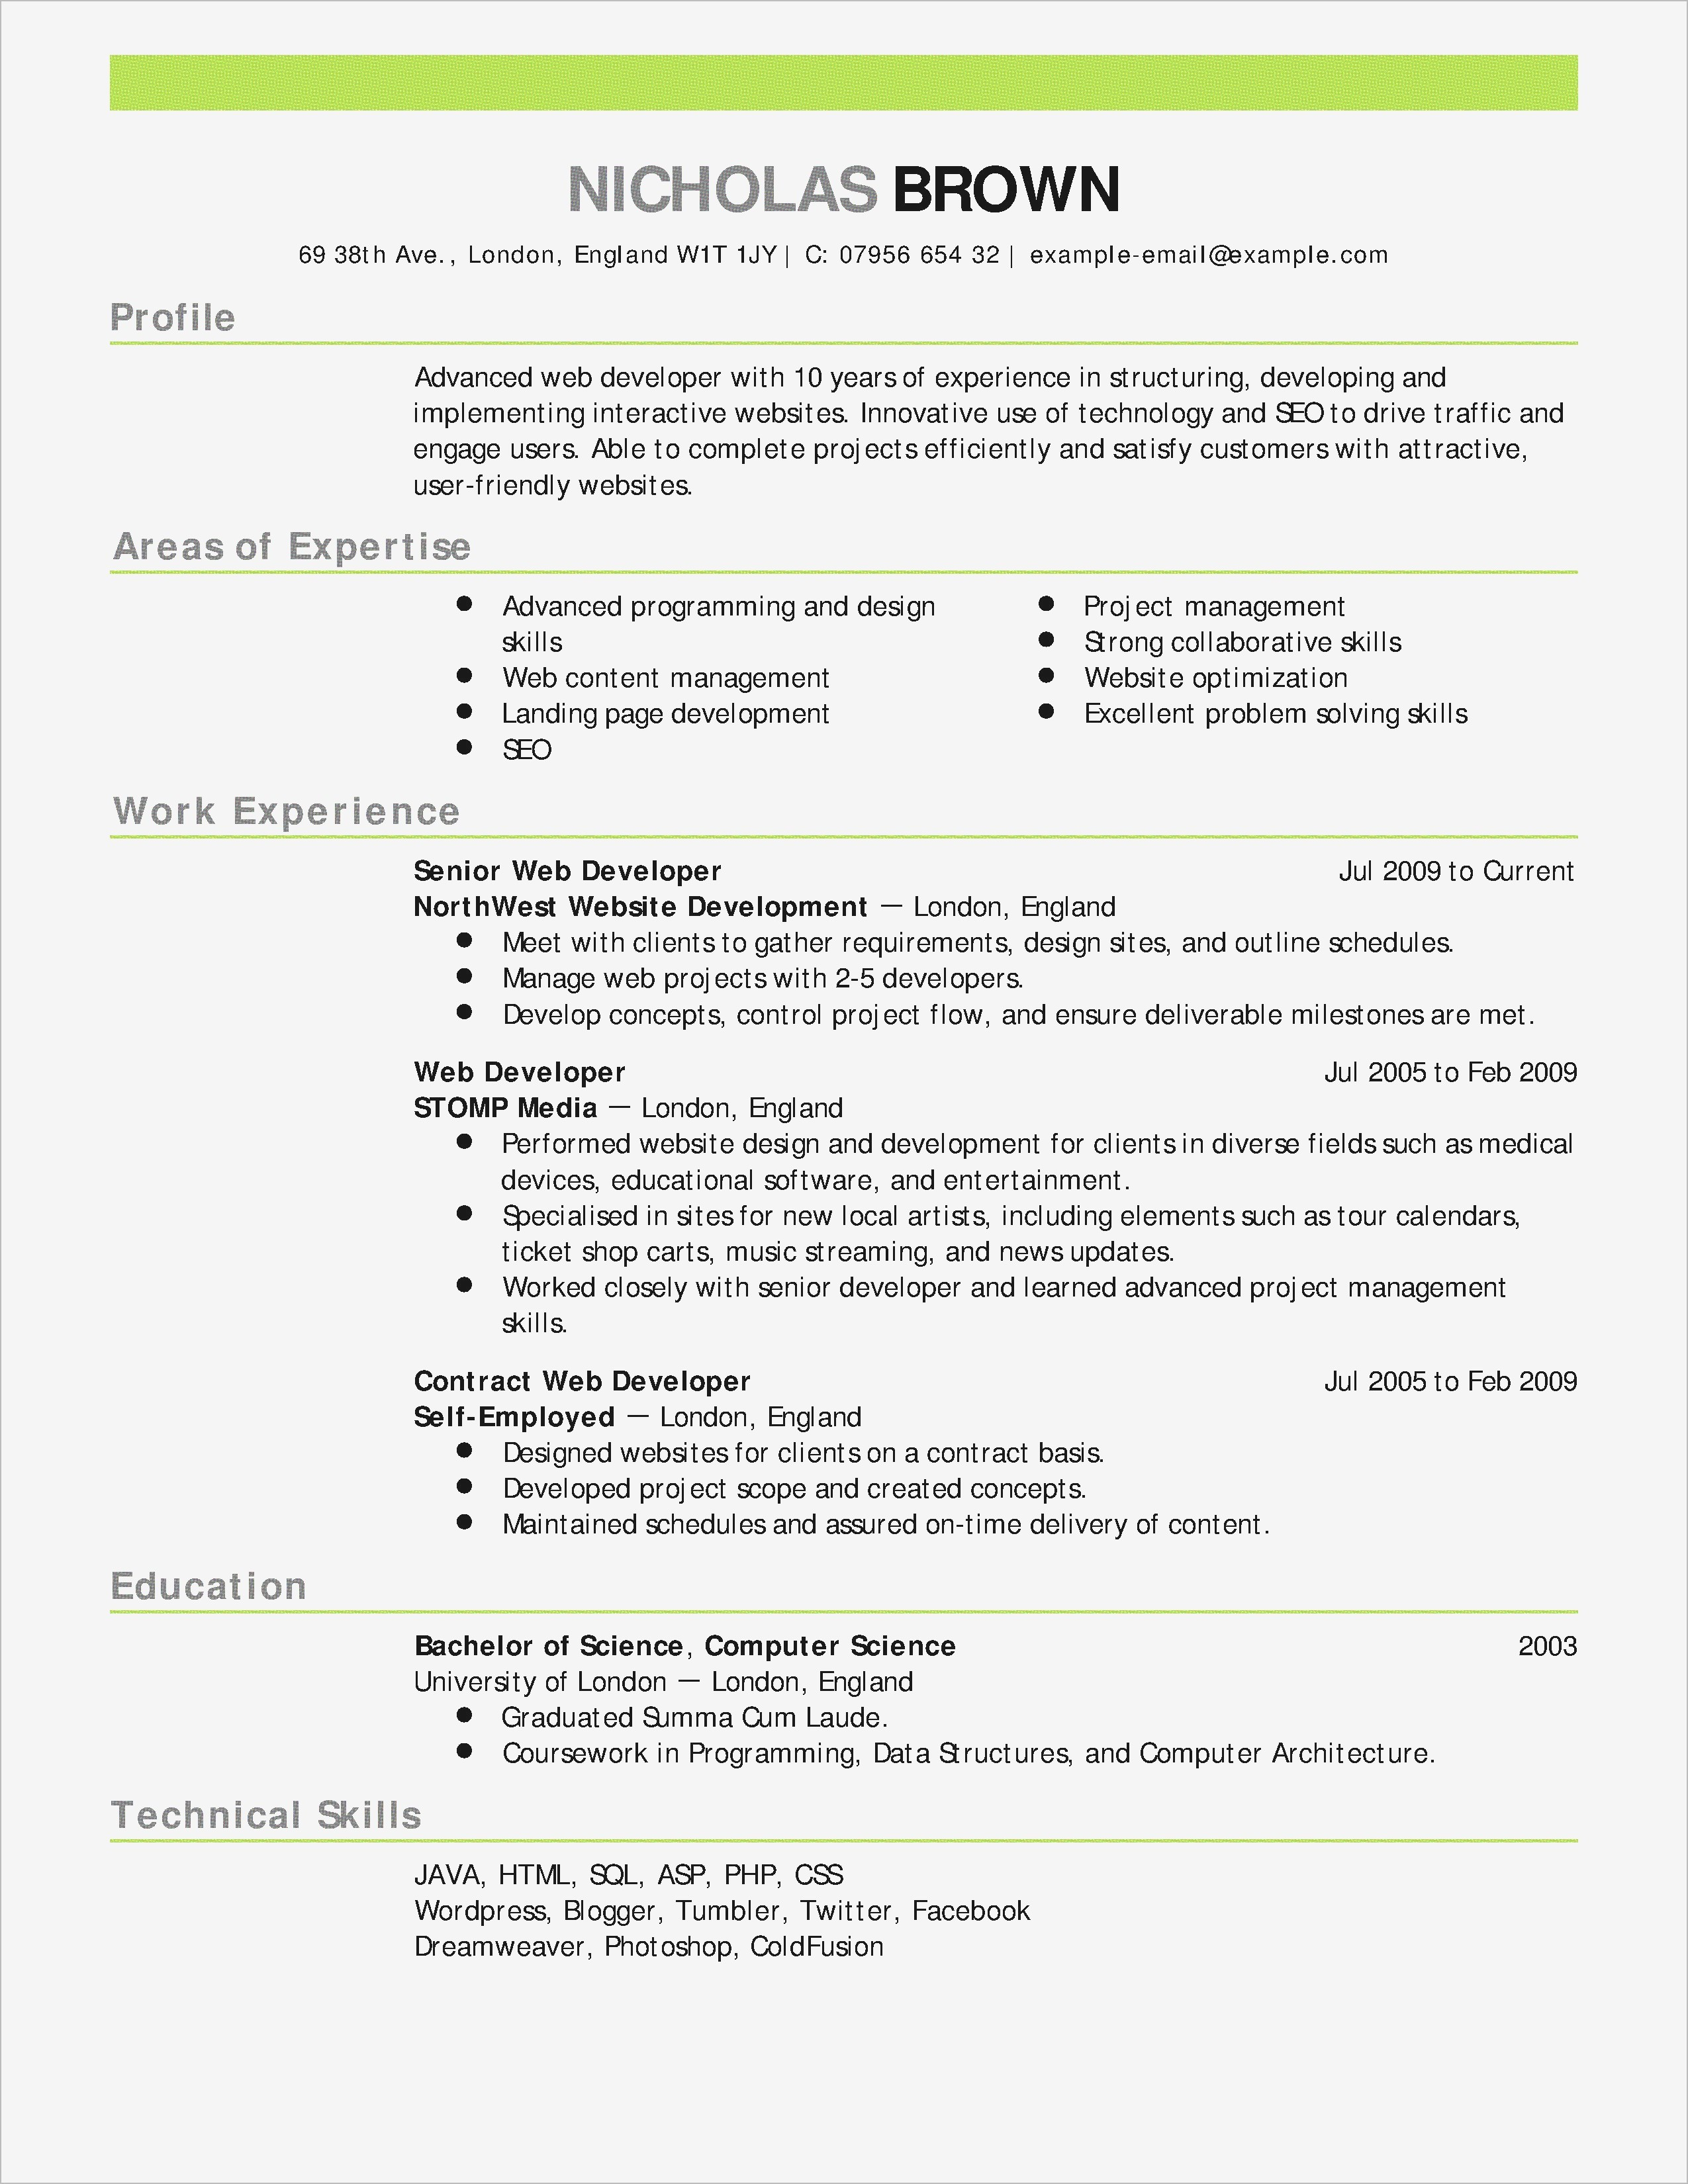 Creating the Perfect Resume - Legal Cover Letter Template Gallery